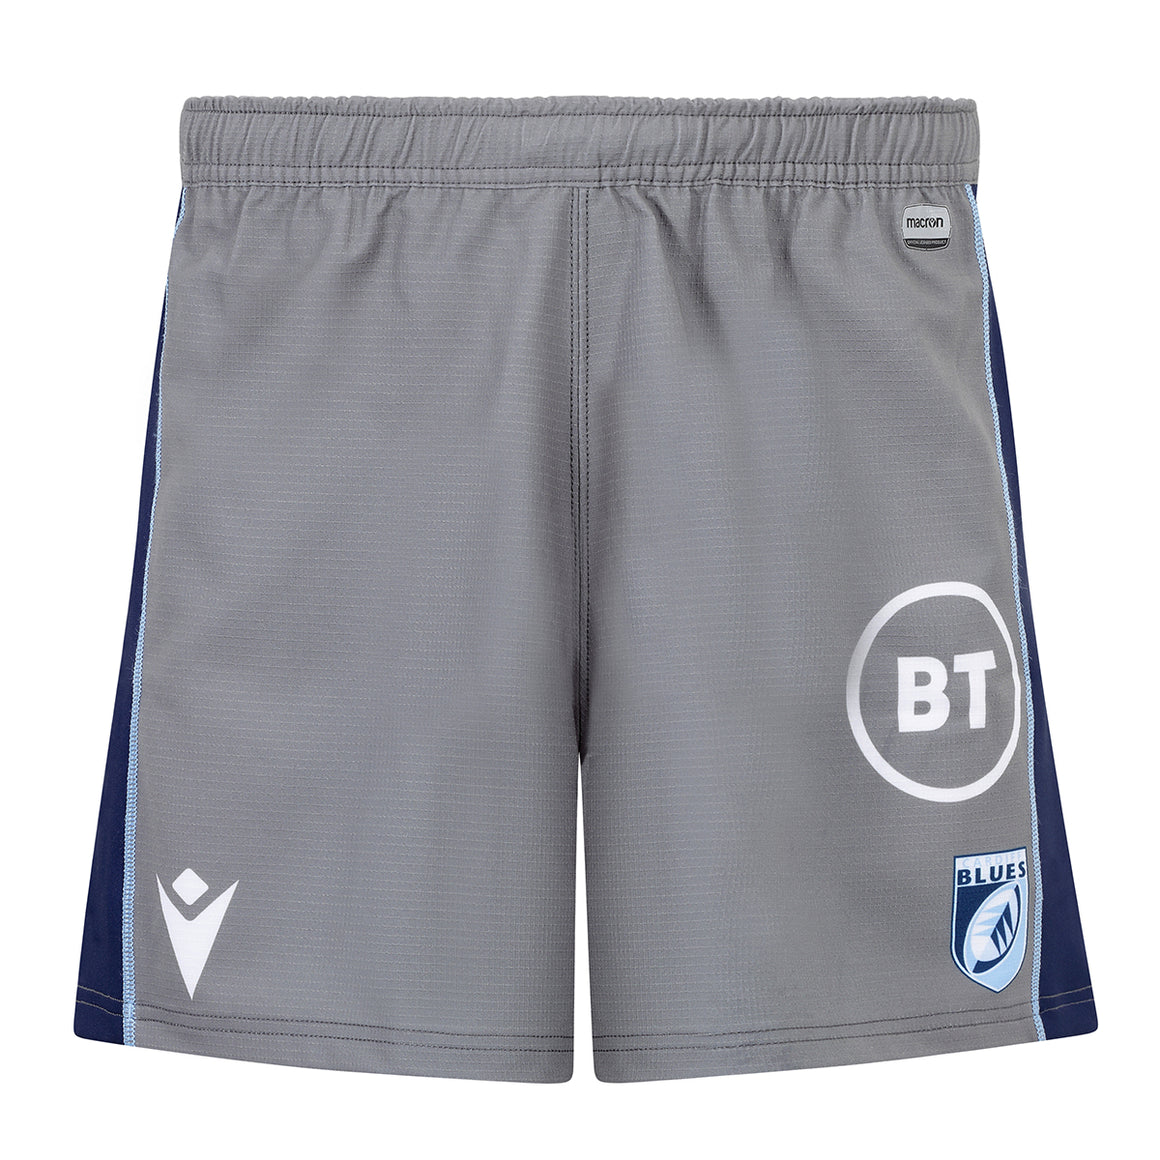 Replica European Shorts Junior 19/20